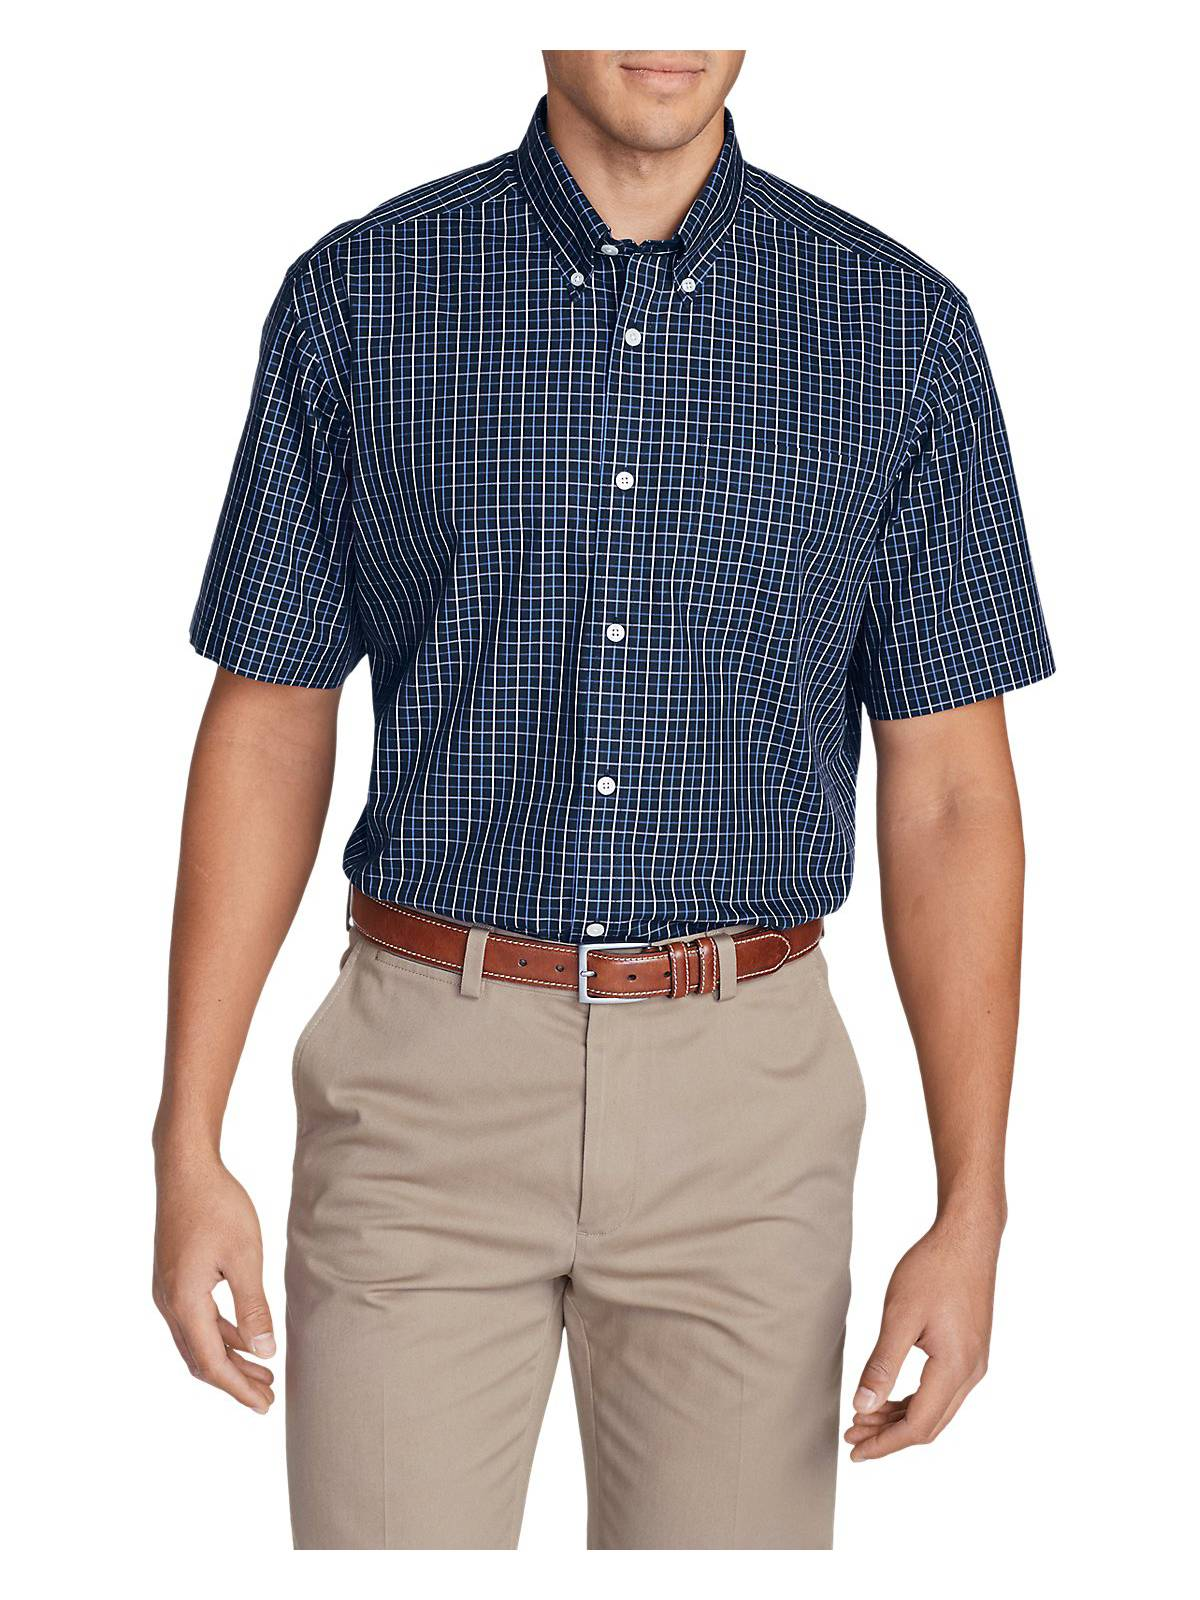 208b842909 Eddie Bauer Men s Wrinkle-Free Relaxed Fit Short-Sleeve Pinpoint Oxford  Shirt -